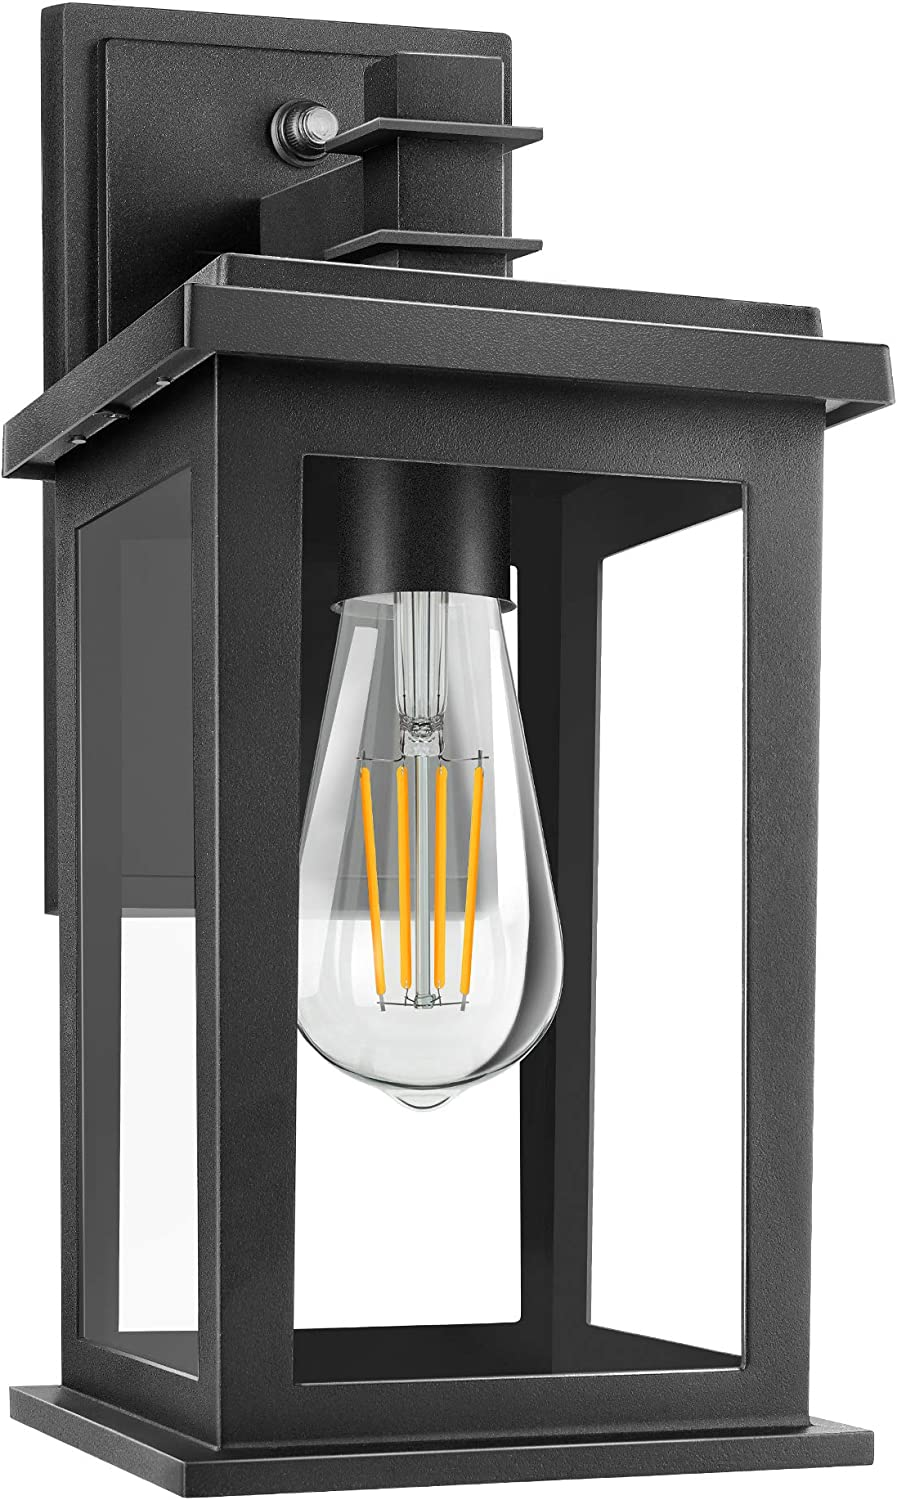 Amazon Com Dusk To Dawn Sensor Outdoor Wall Lantern Exterior Wall Sconce Wall Mount Led Lights With E26 Socket Anti Rust Waterproof Porch Light Fixture With Clear Glass Shade For Garage Doorway Home Improvement